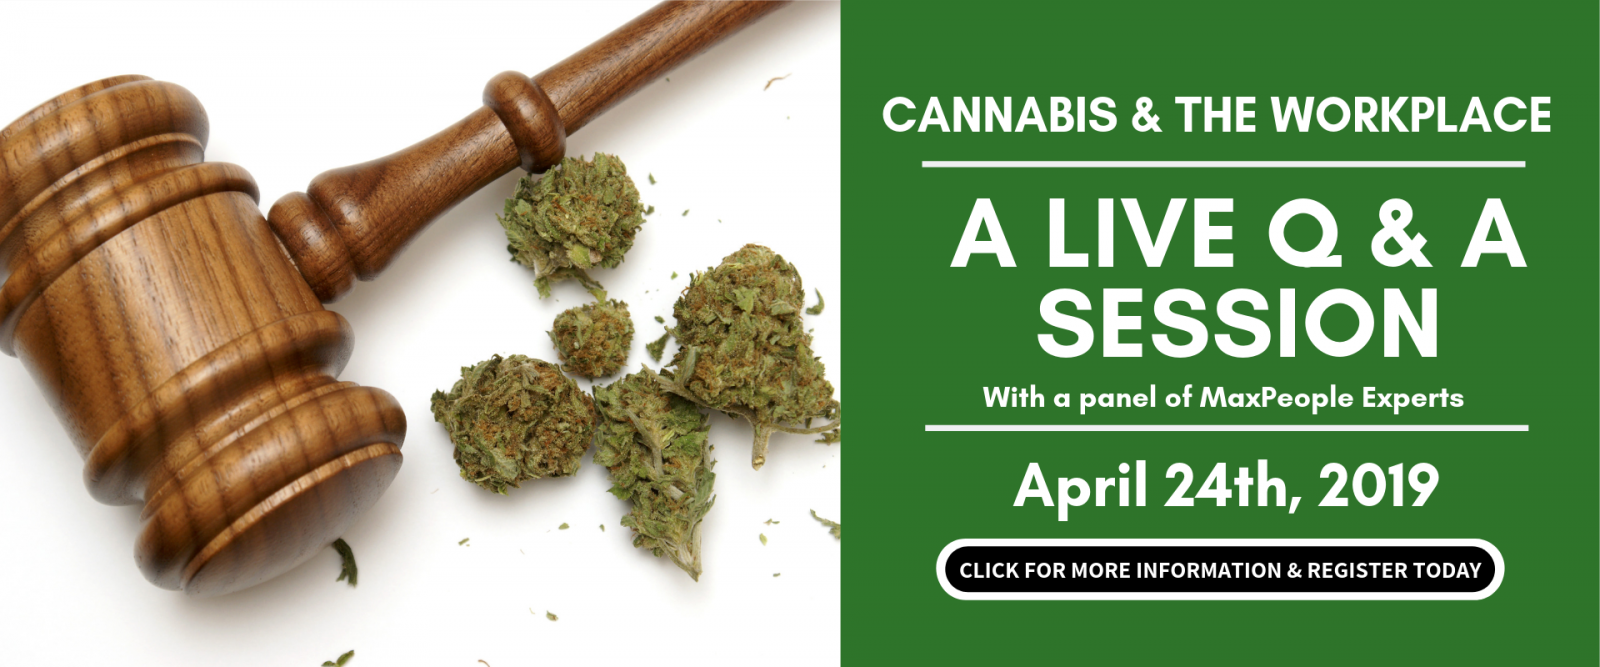 MaxPeople Cannabis & The Workplace Graphic - April 24th Live Q&A